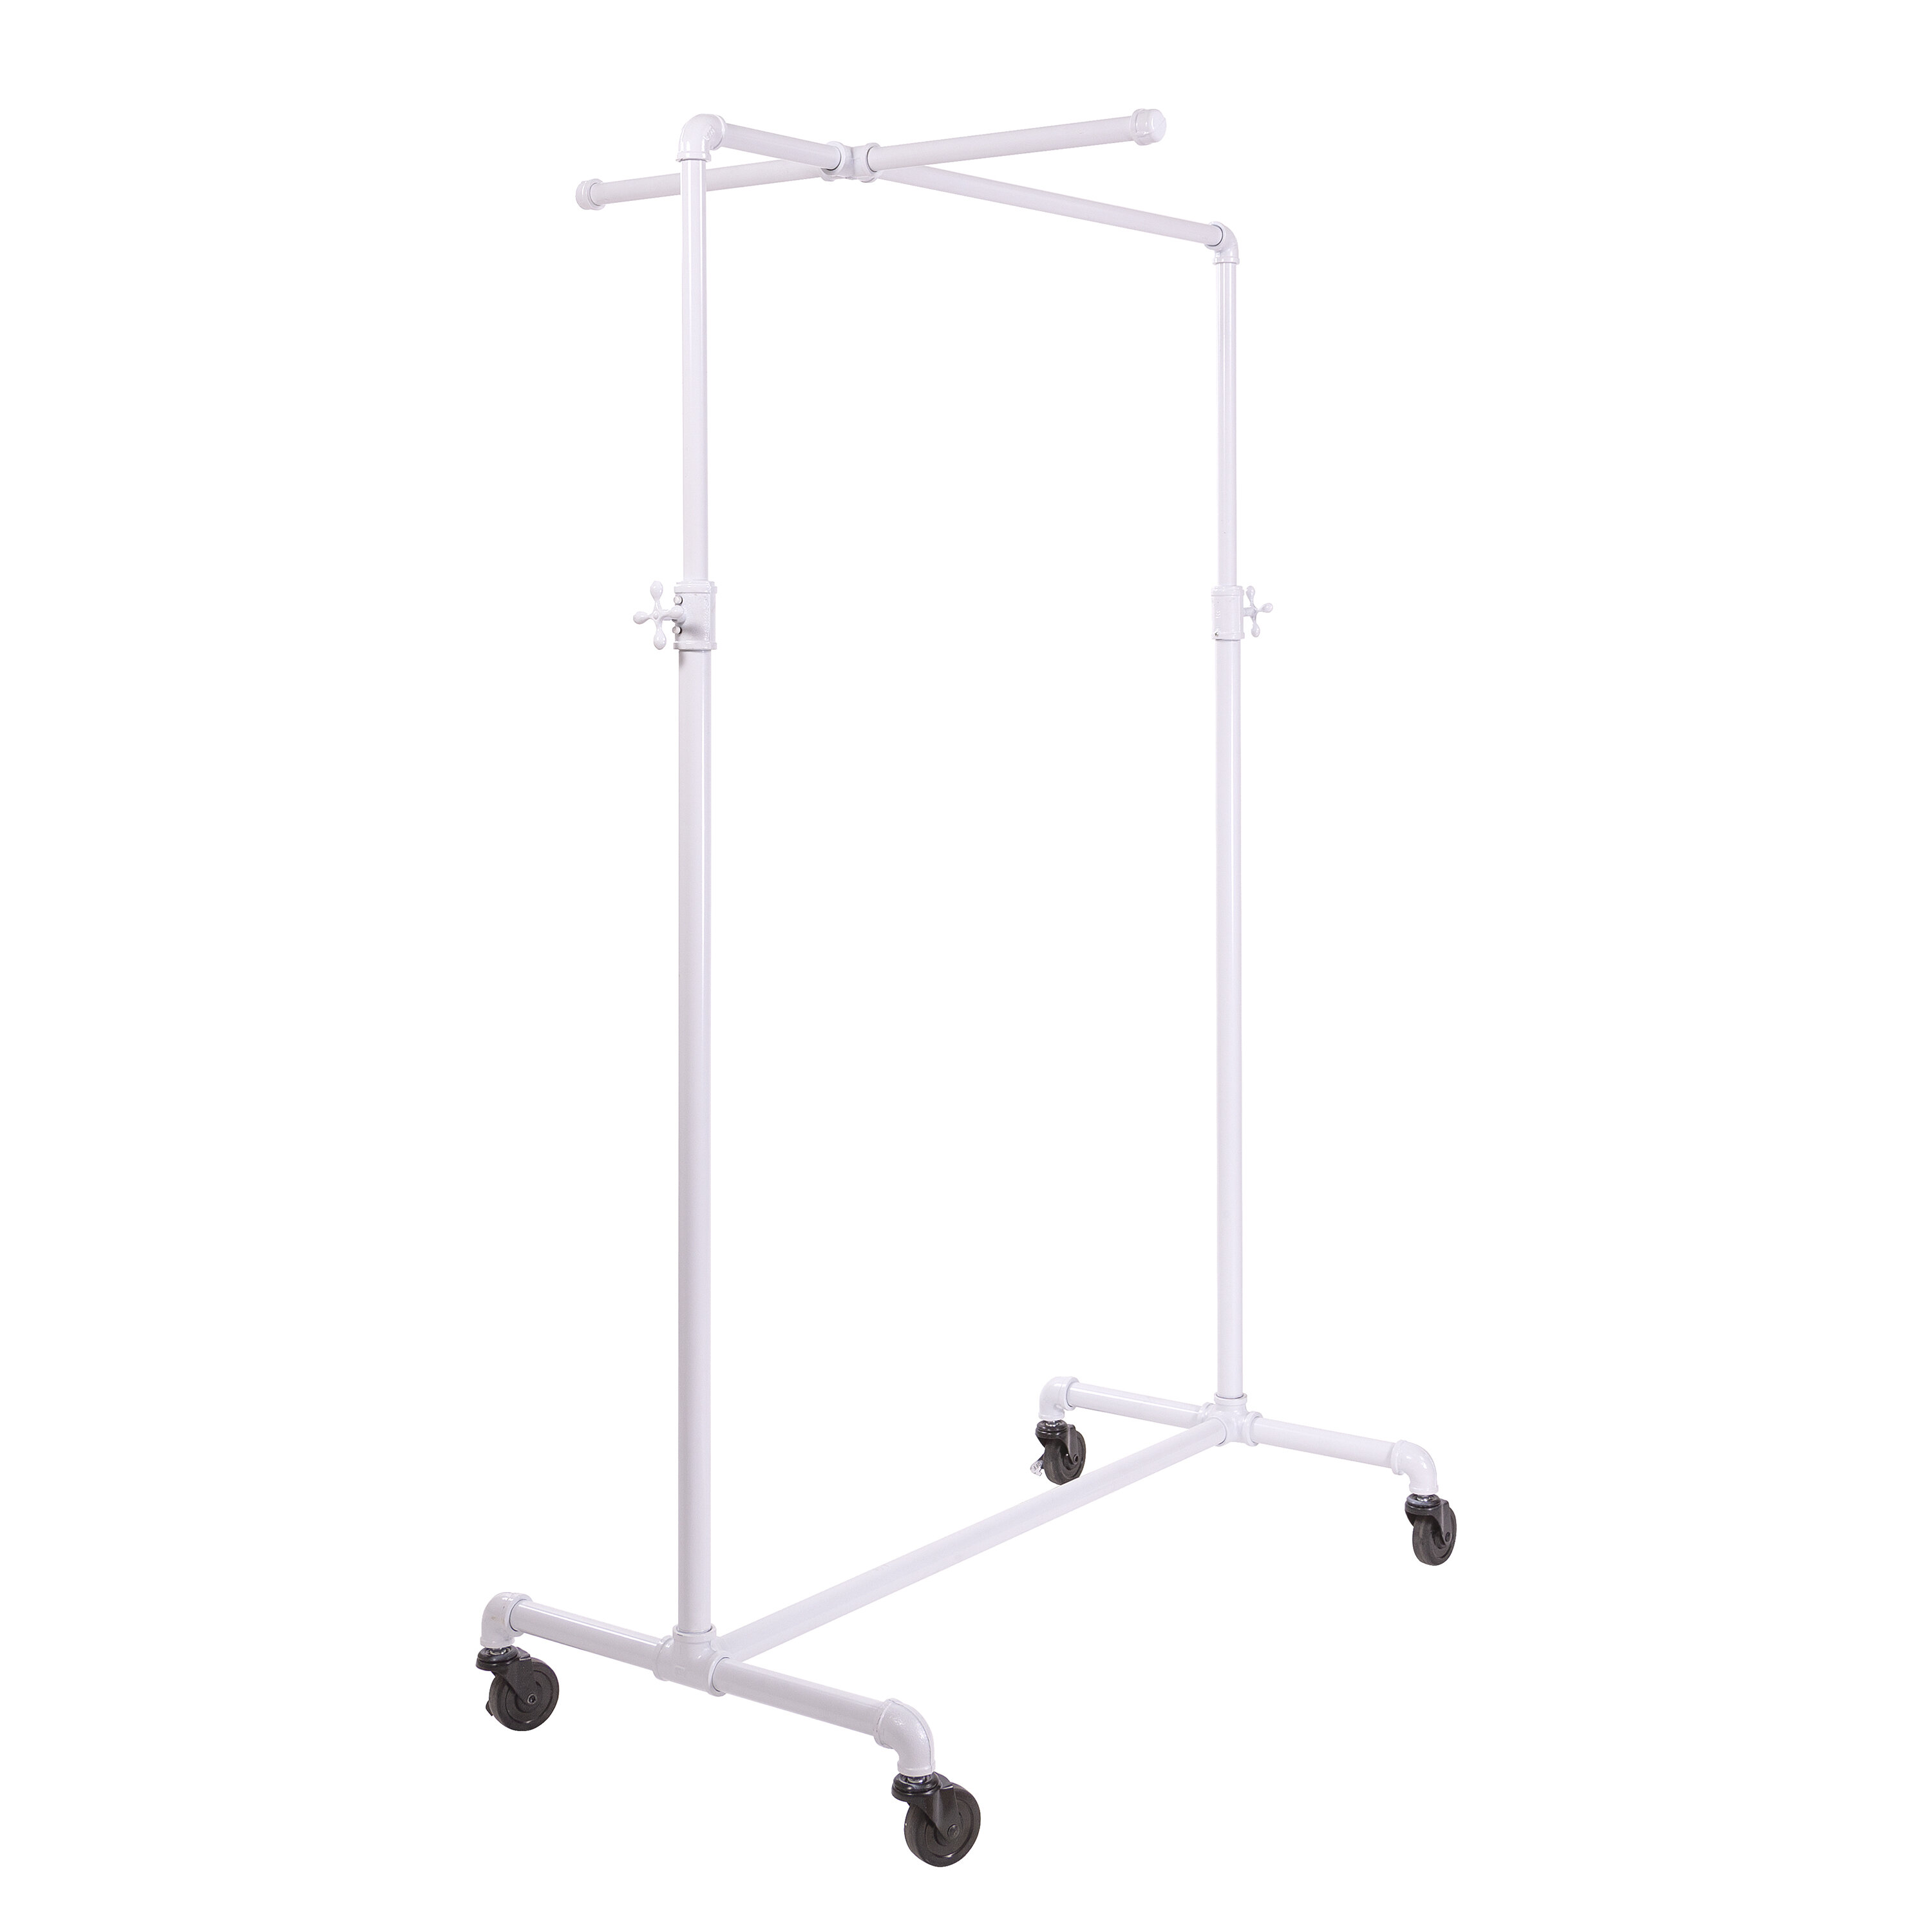 NEW PIPELINE COLLECTION CASTER SET FOR GARMENT RACK FREE SHIPPING